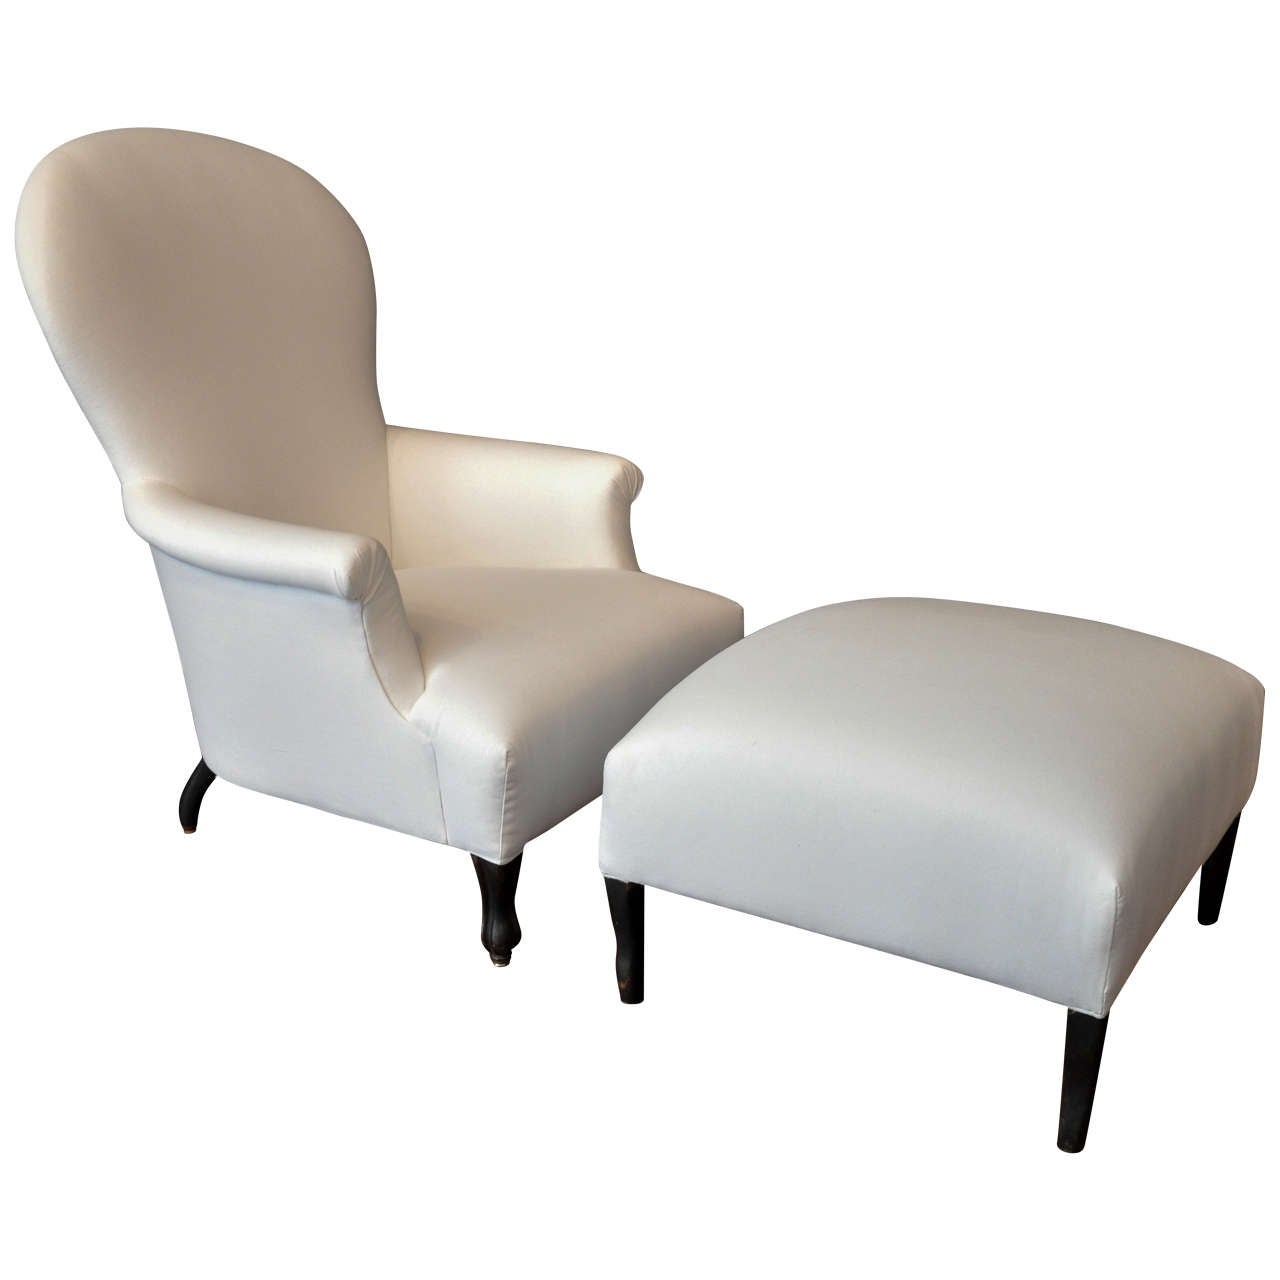 Funky French Chaise Lounge Chair And Ottoman At 1stdibs